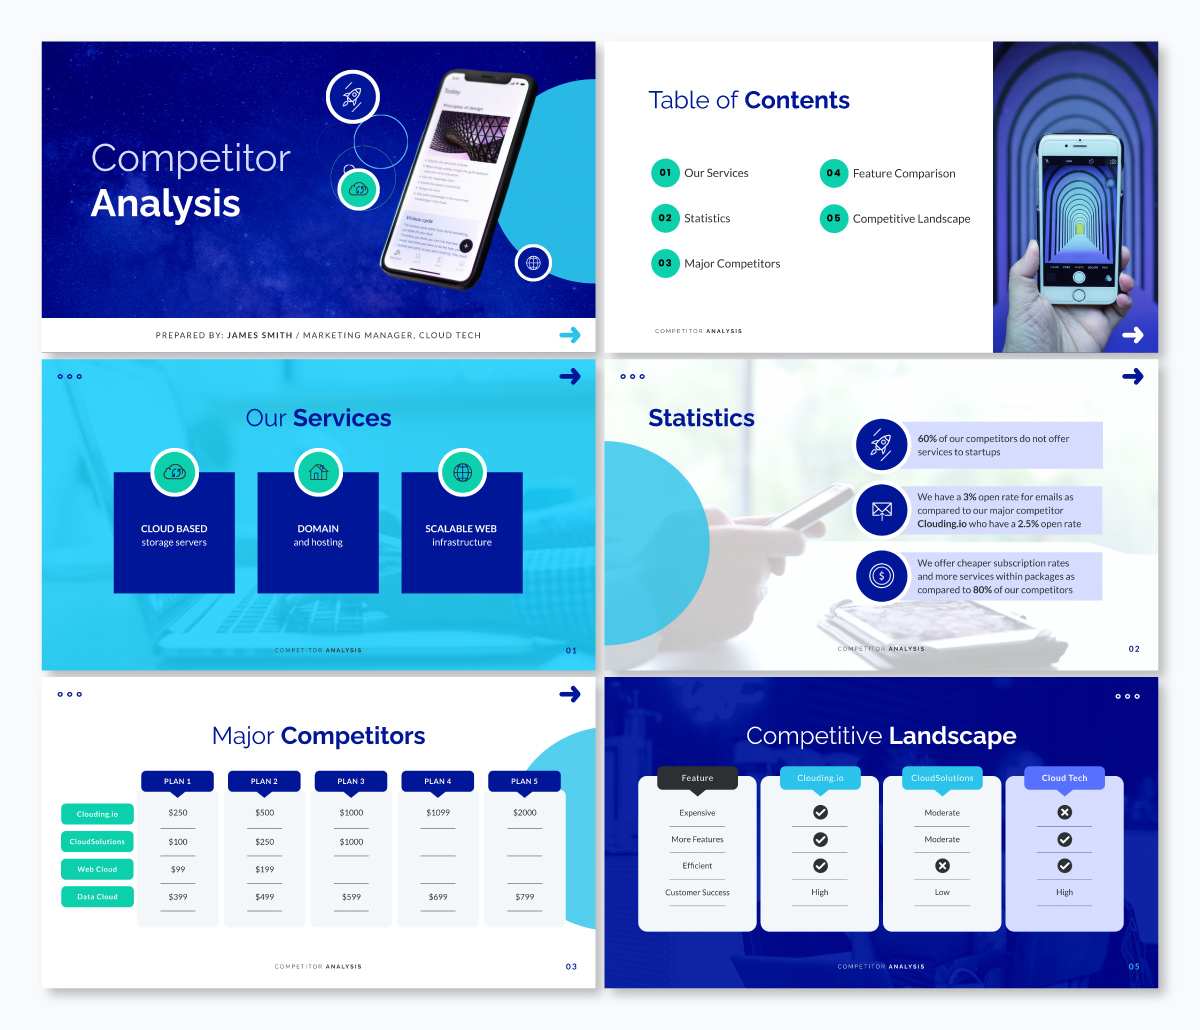 A competitor analysis keynote template available in Visme.